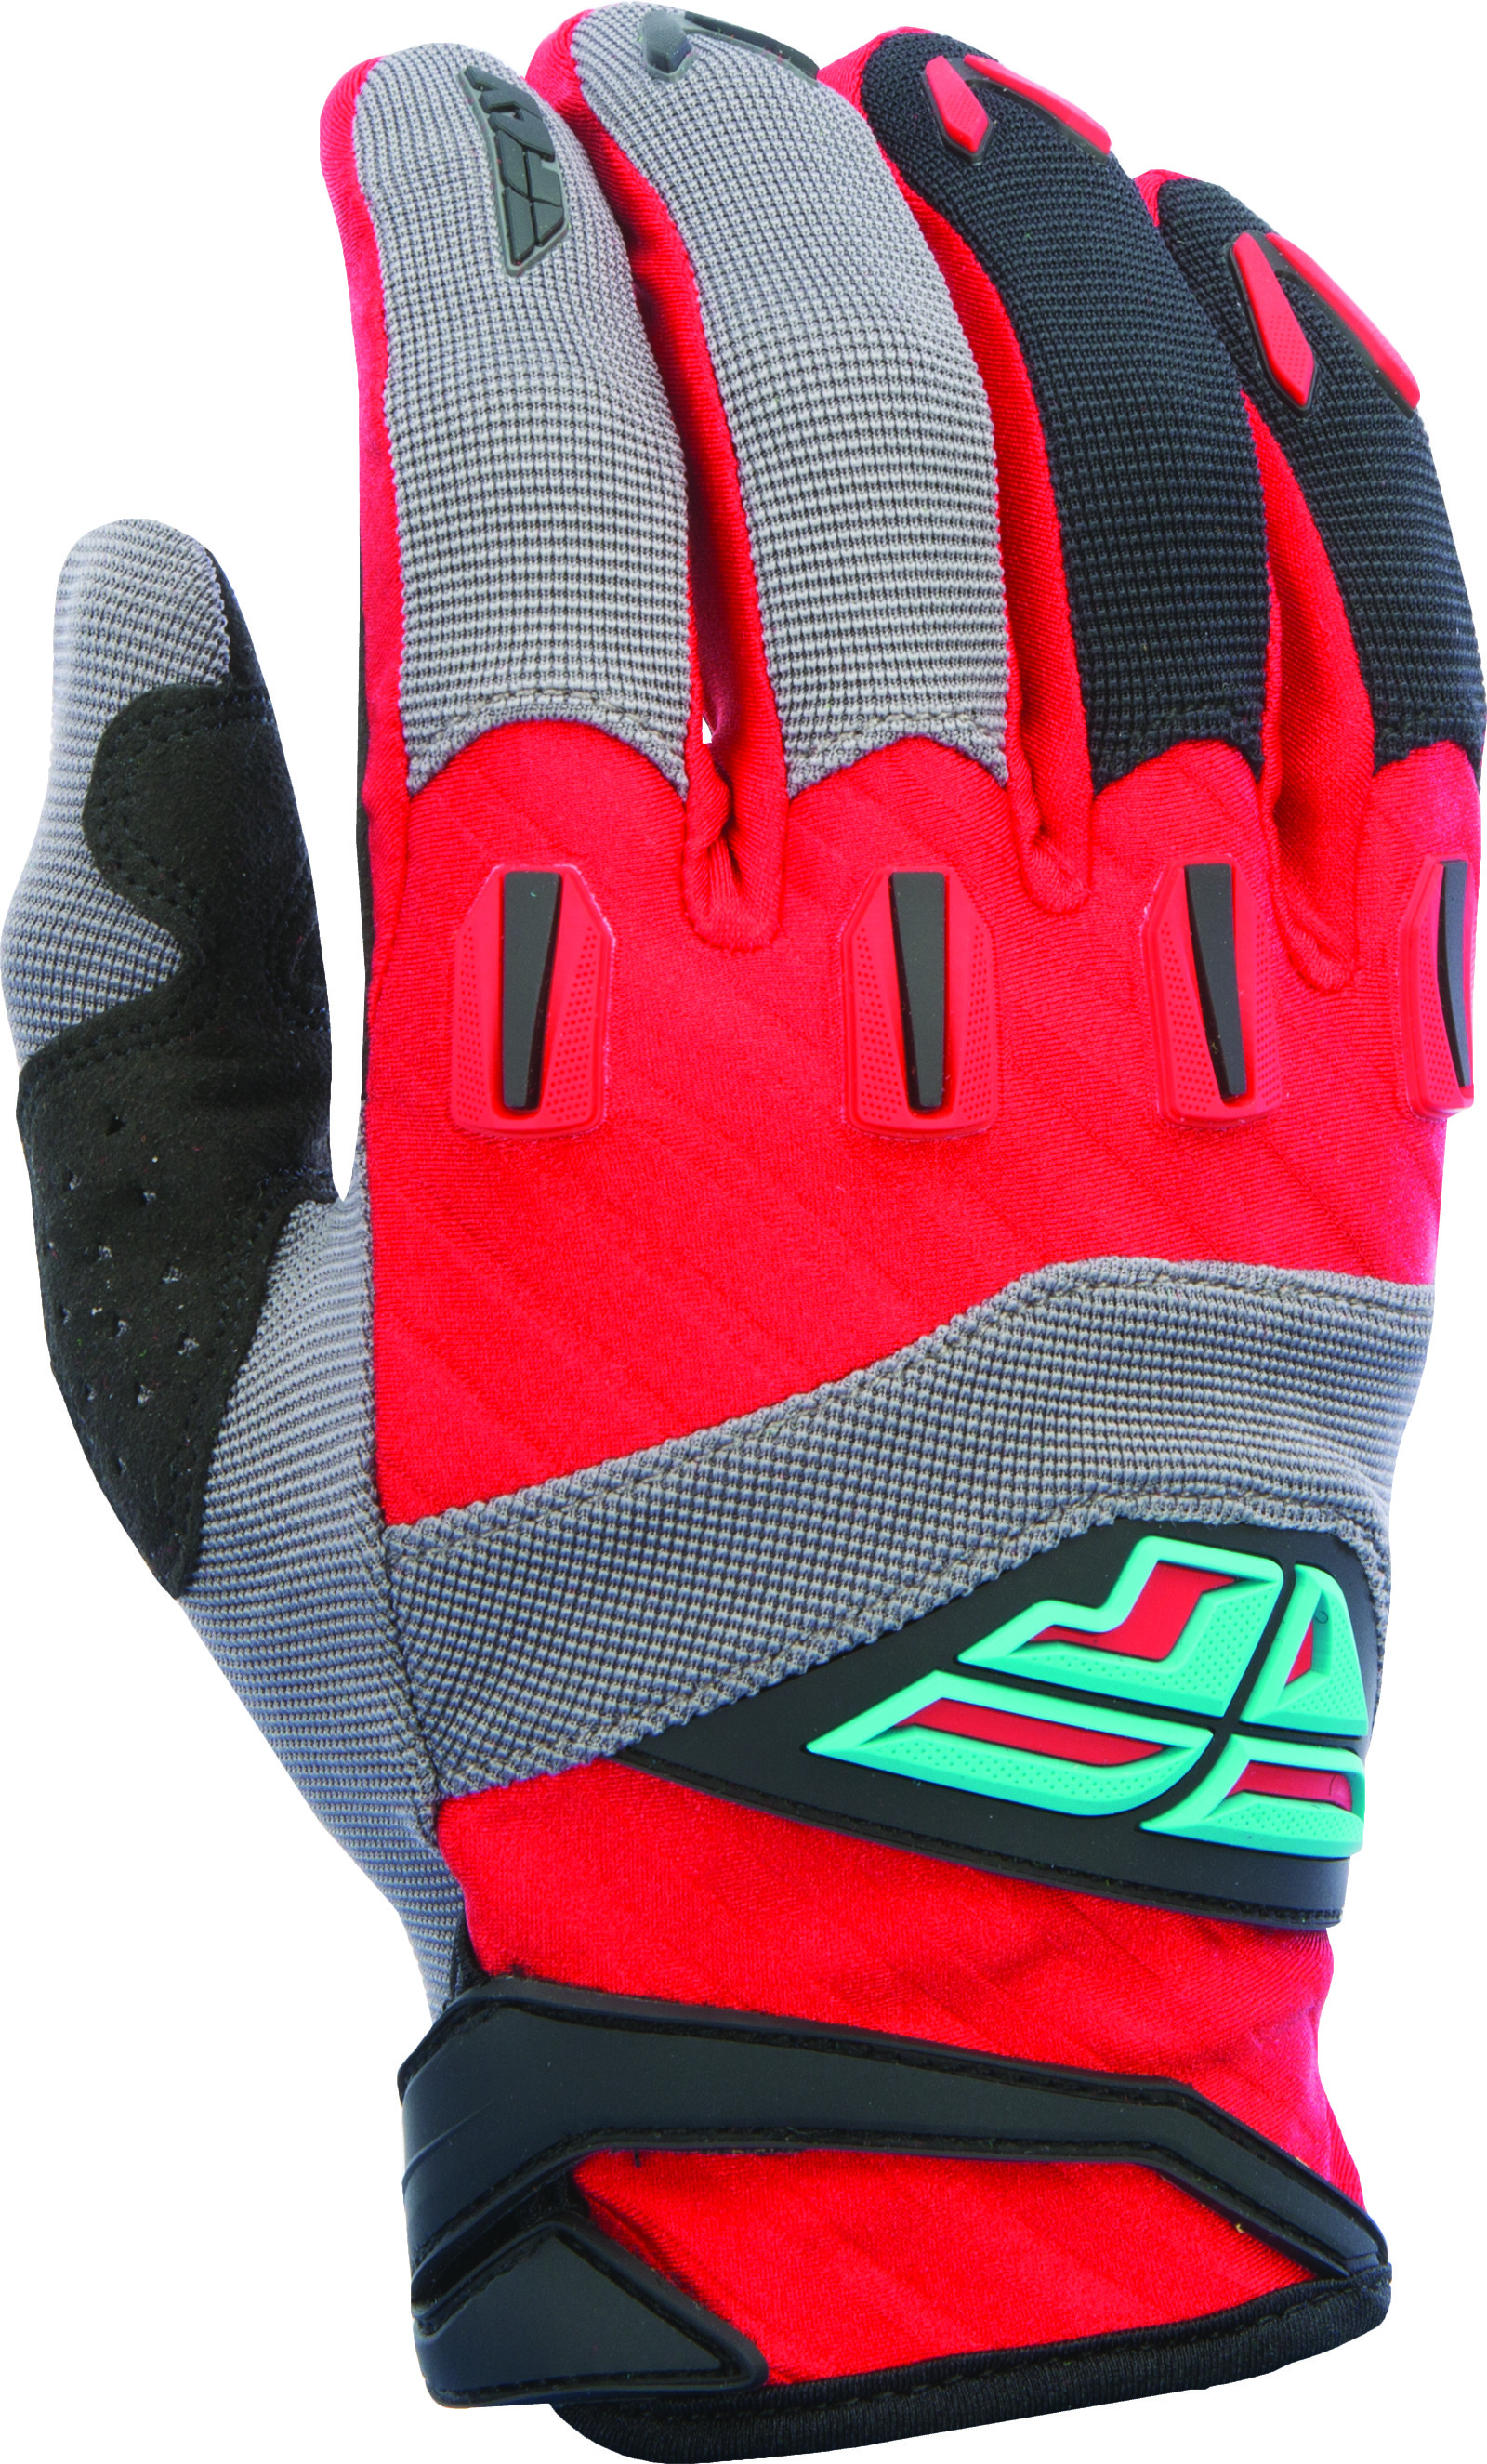 F-16 GLOVE RED/BLACK/GREY SZ 7 XS (370-91207)